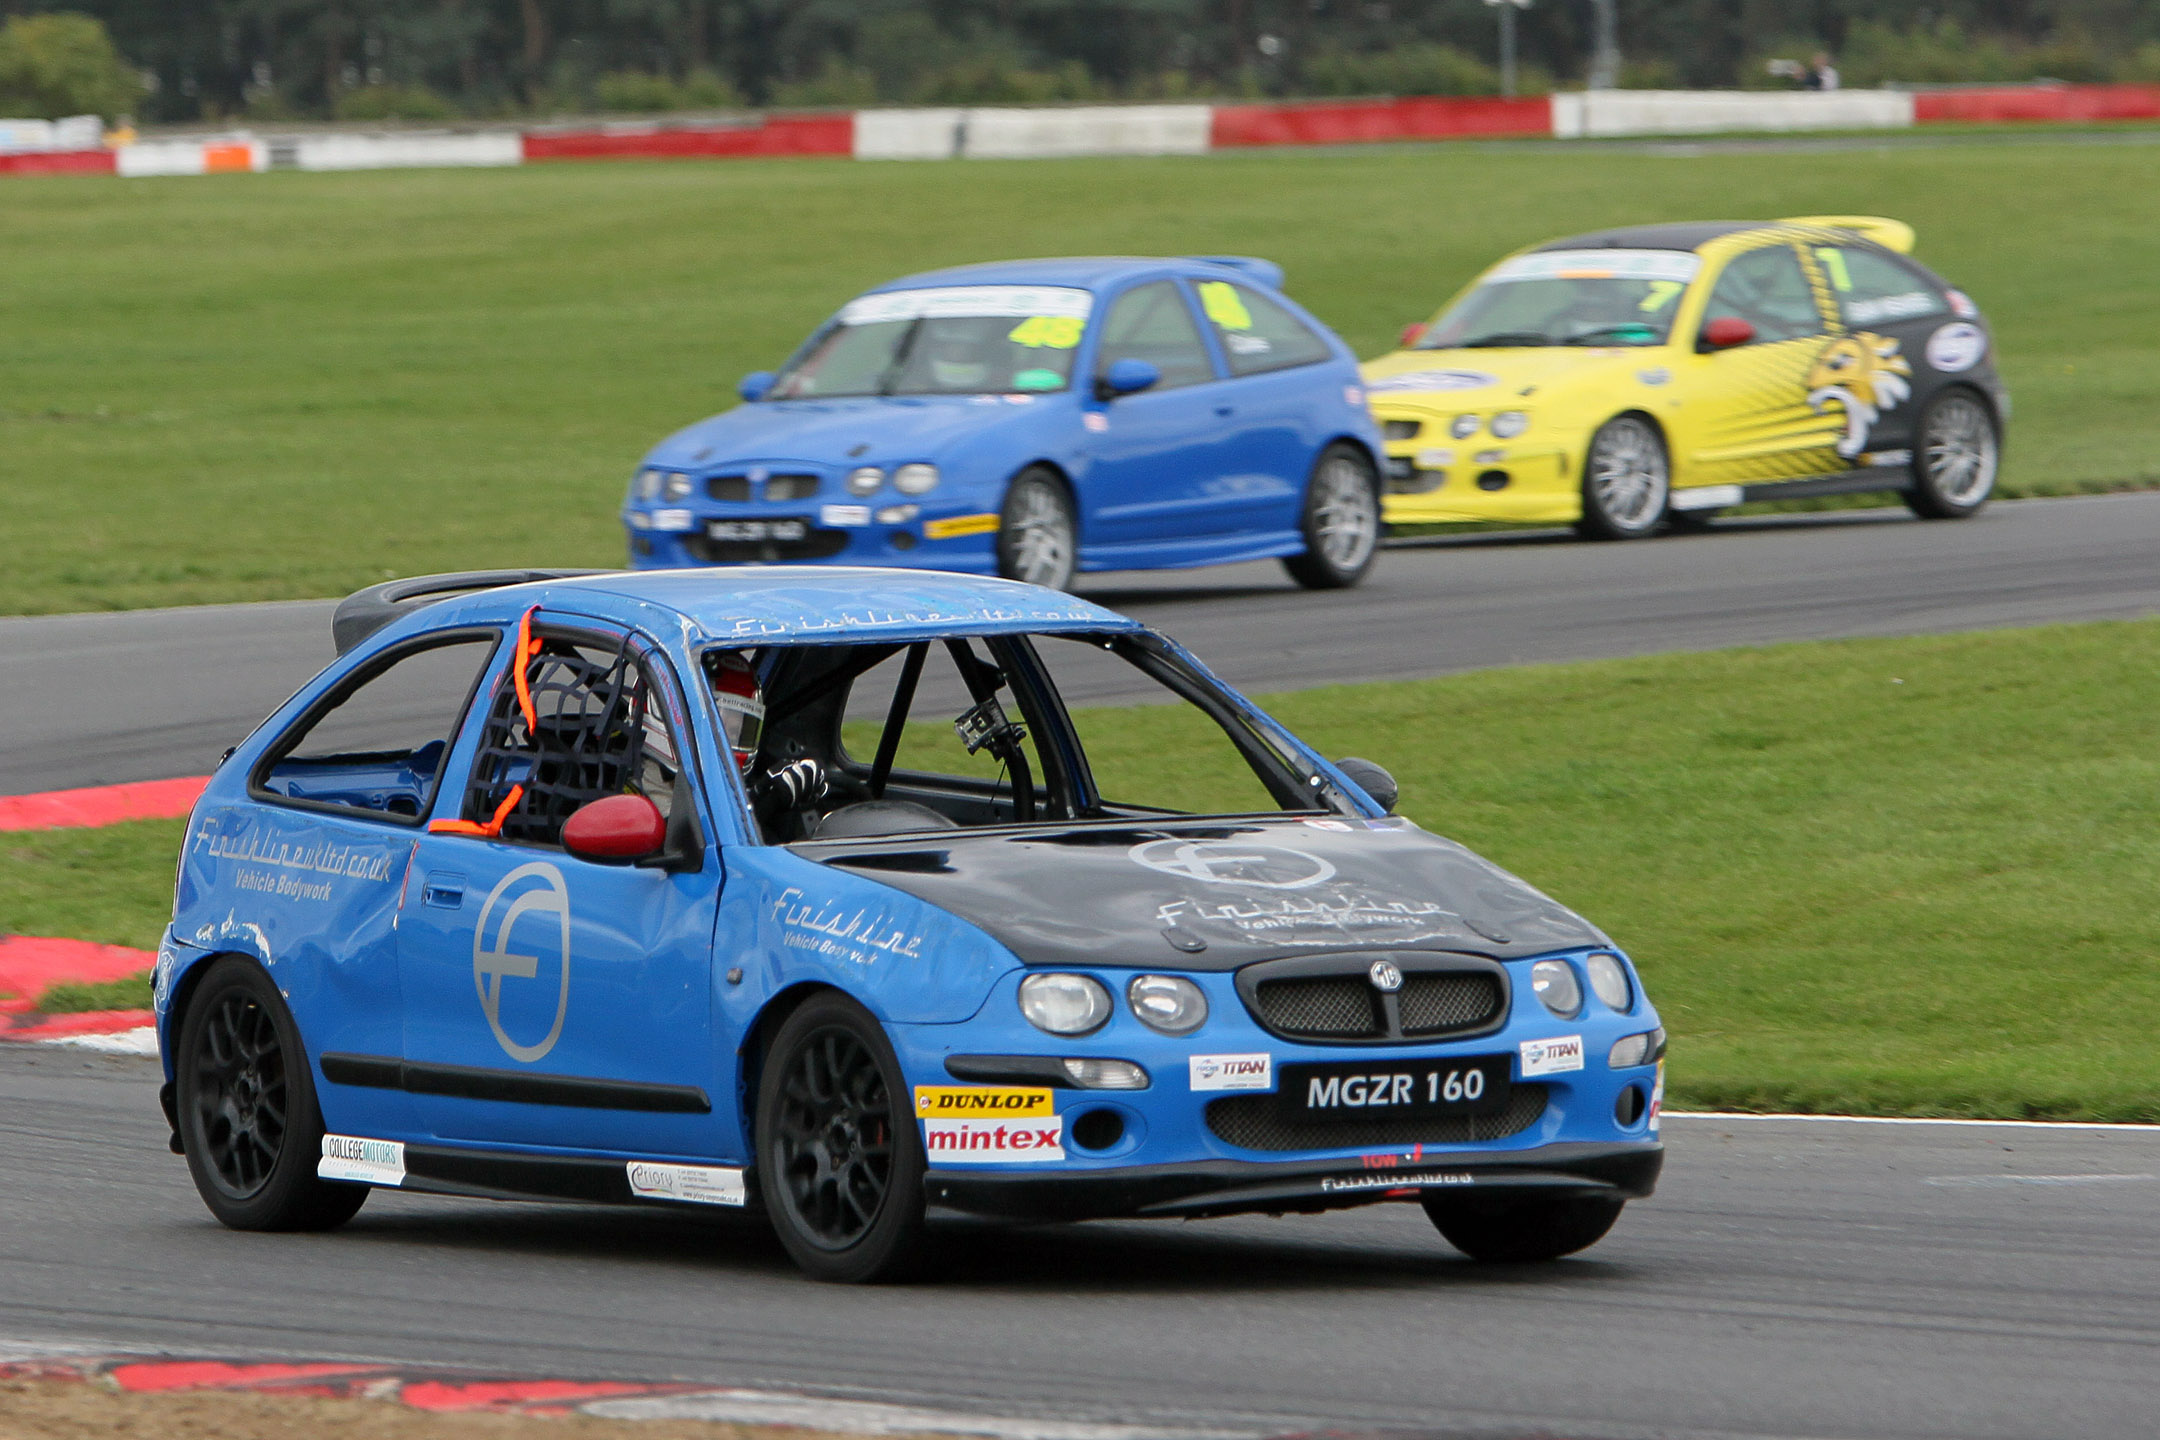 ZR 160 Archives - MG Trophy Championship